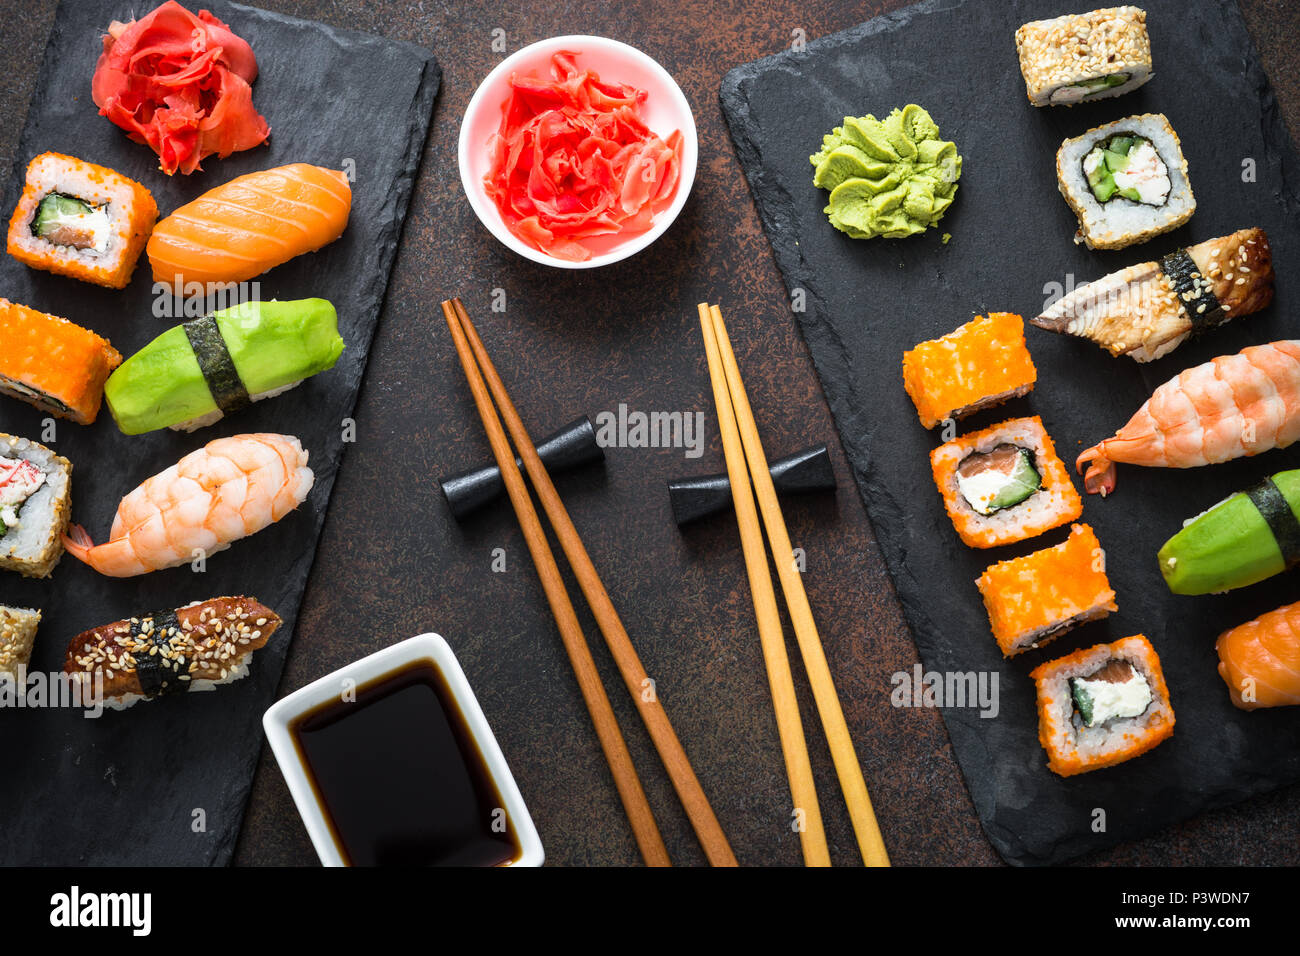 Sushi, maki, nigiri and sushi roll set on dark stone table top view. Japanese food. - Stock Image